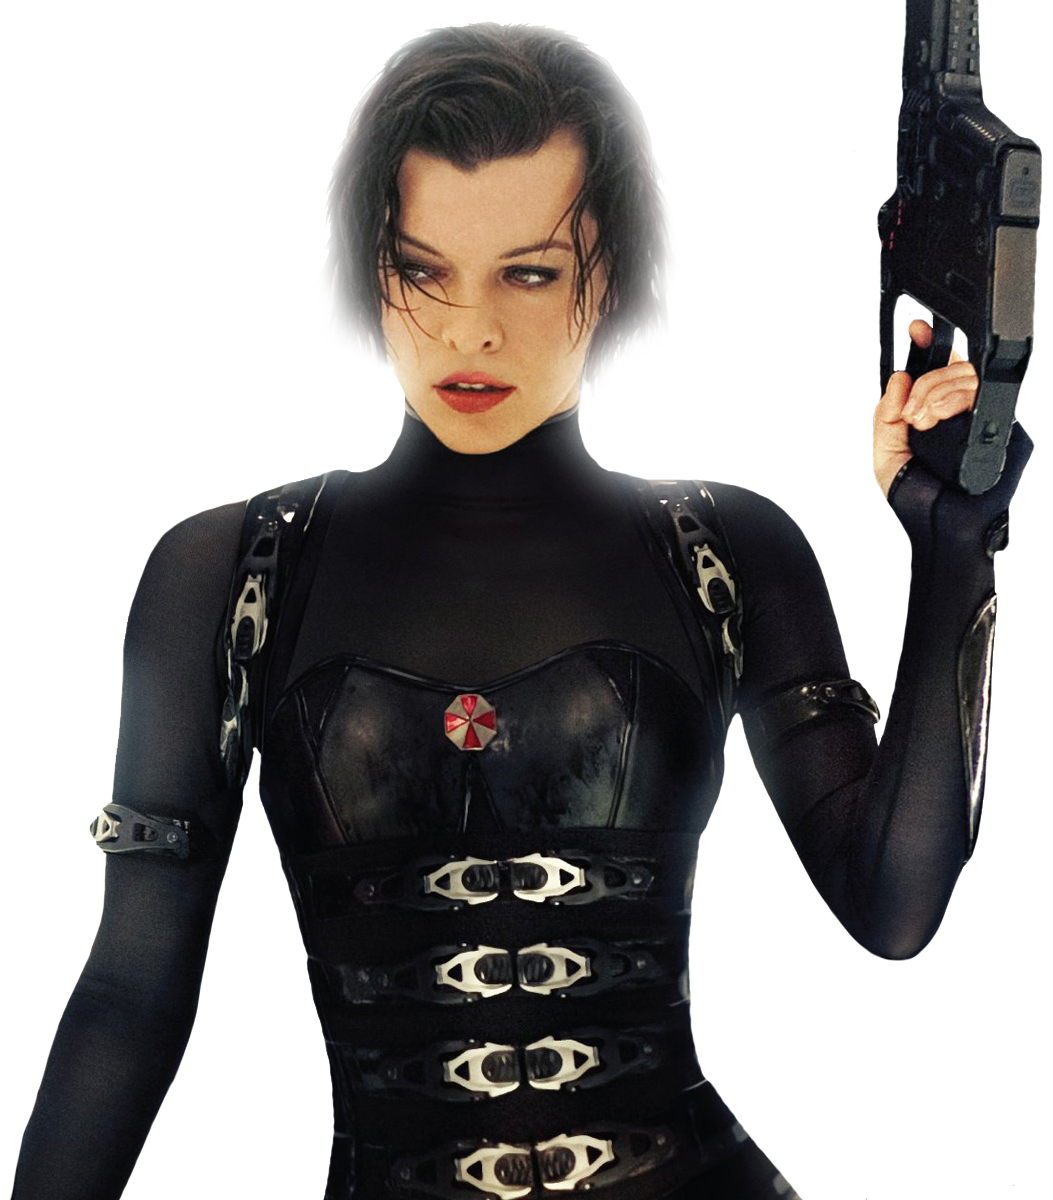 Milla Jovovich Afterlife Png 1053 1200 Resident Evil Milla Jovovich Resident Evil Alice